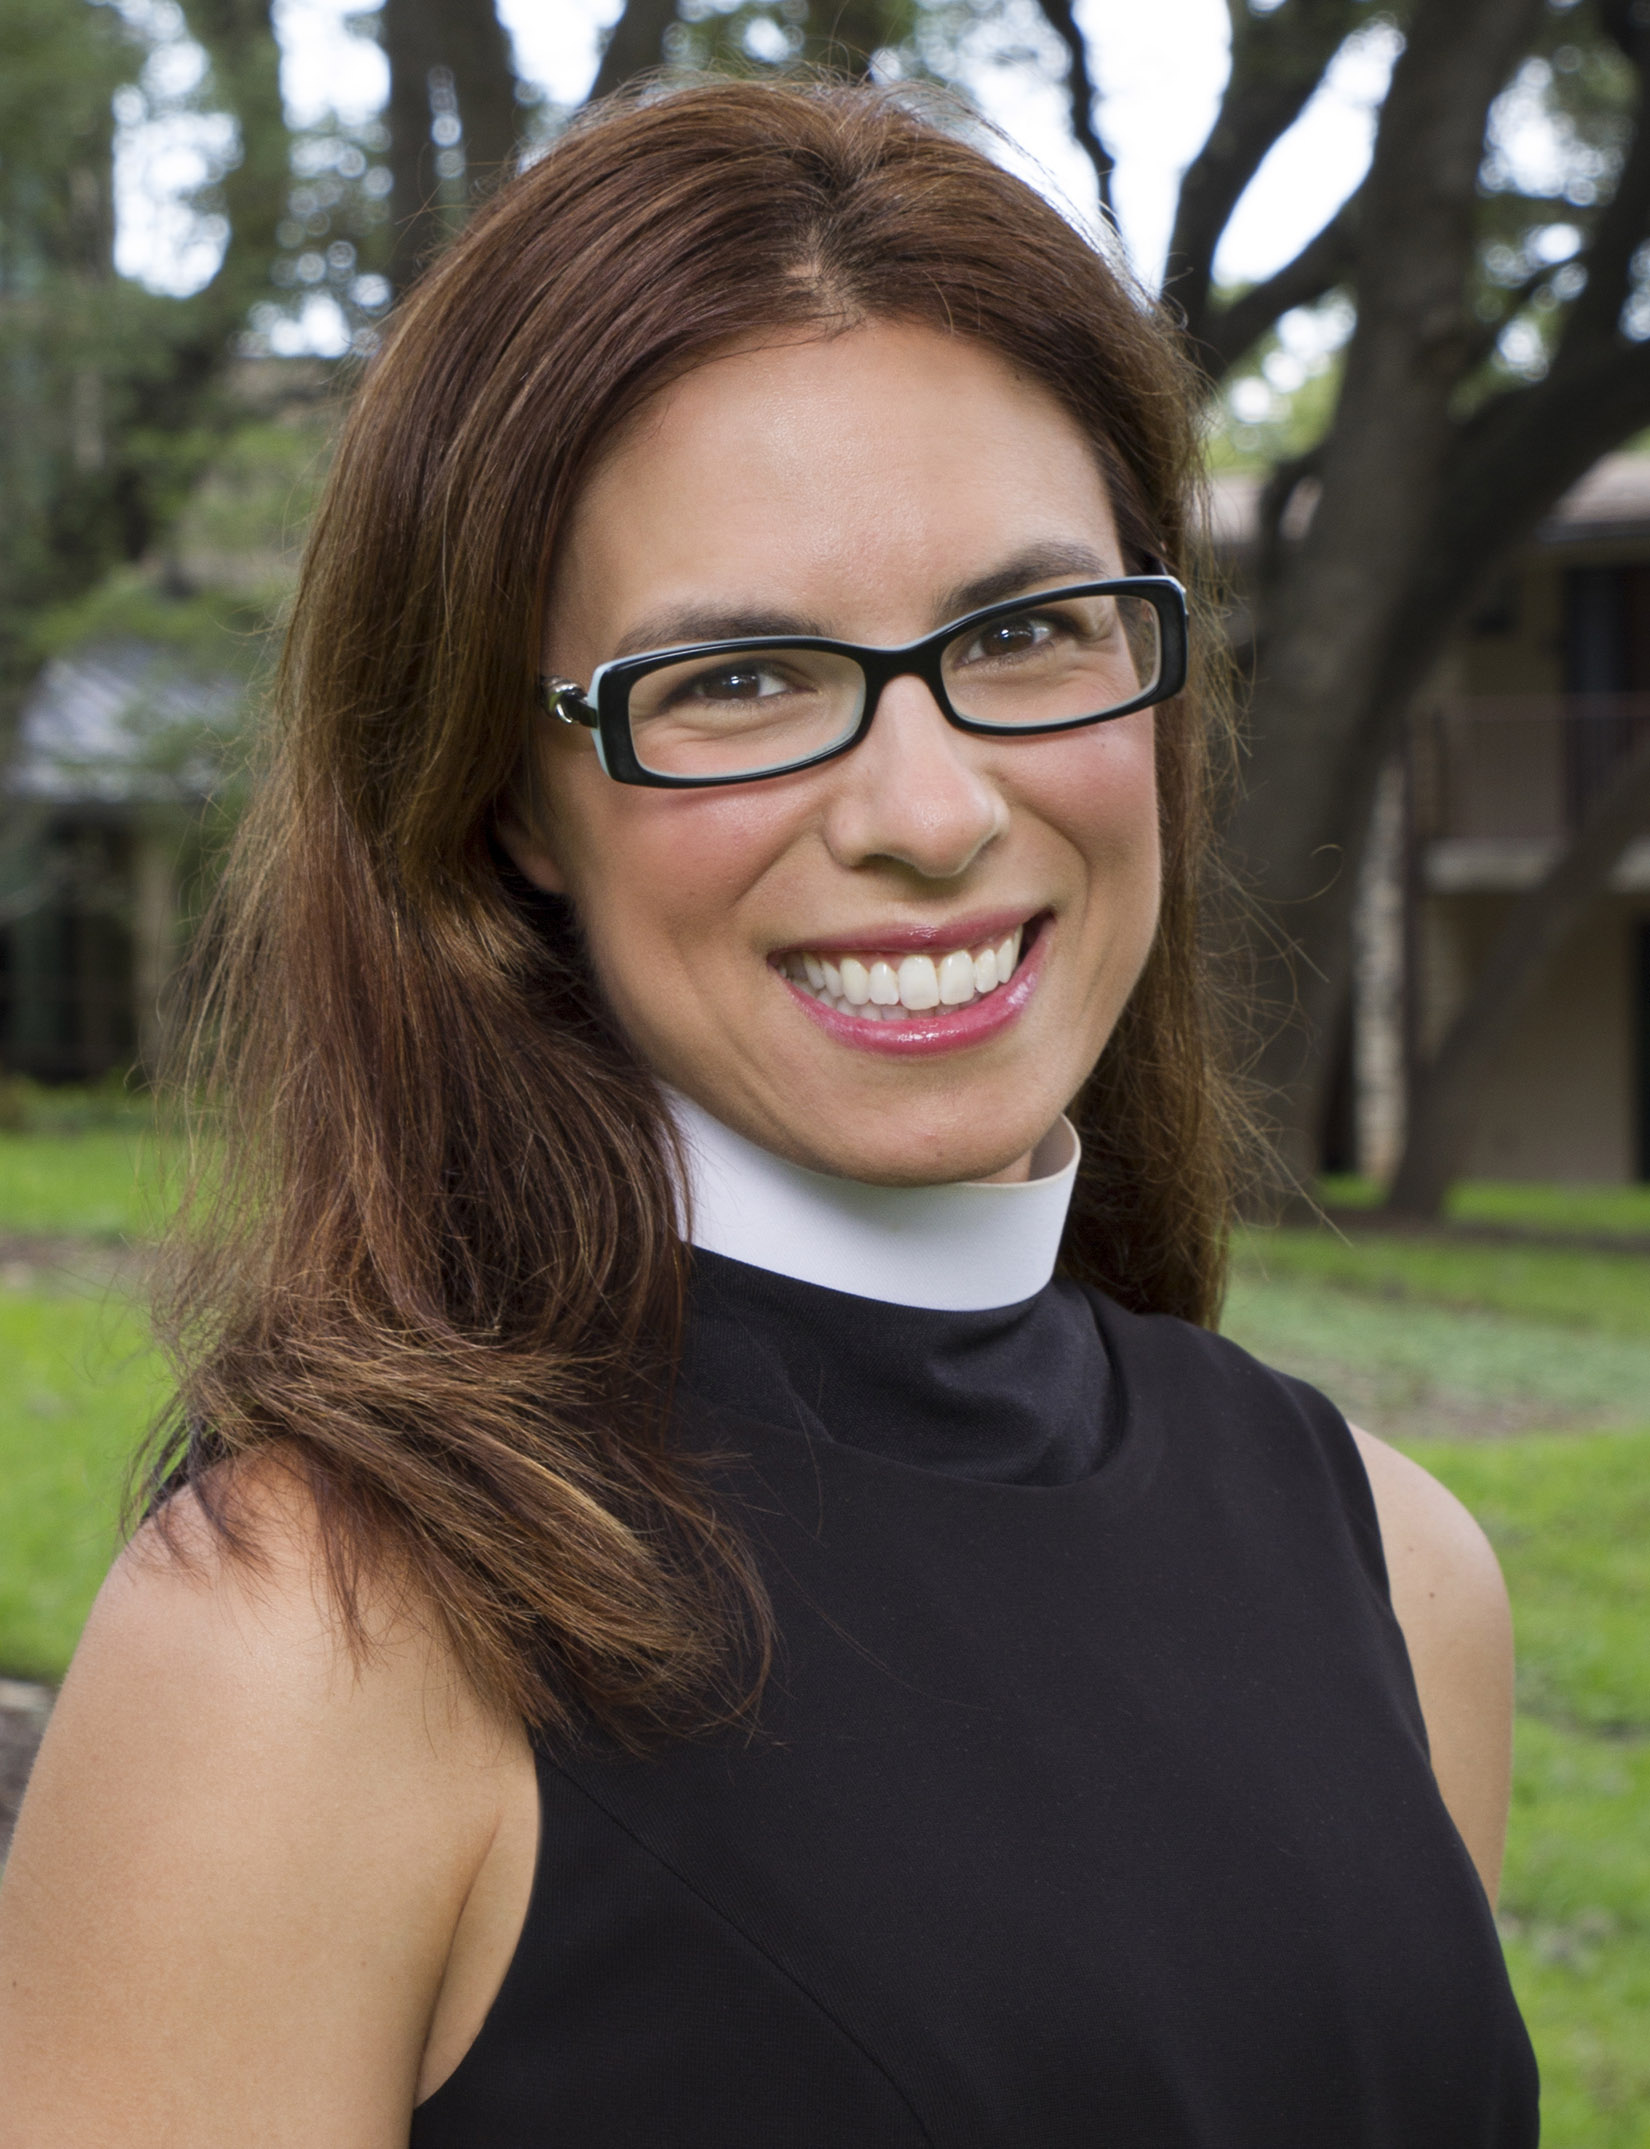 The Rev. Danielle Hansen : Assistant Professor of Pastoral Theology and Director of Field Education